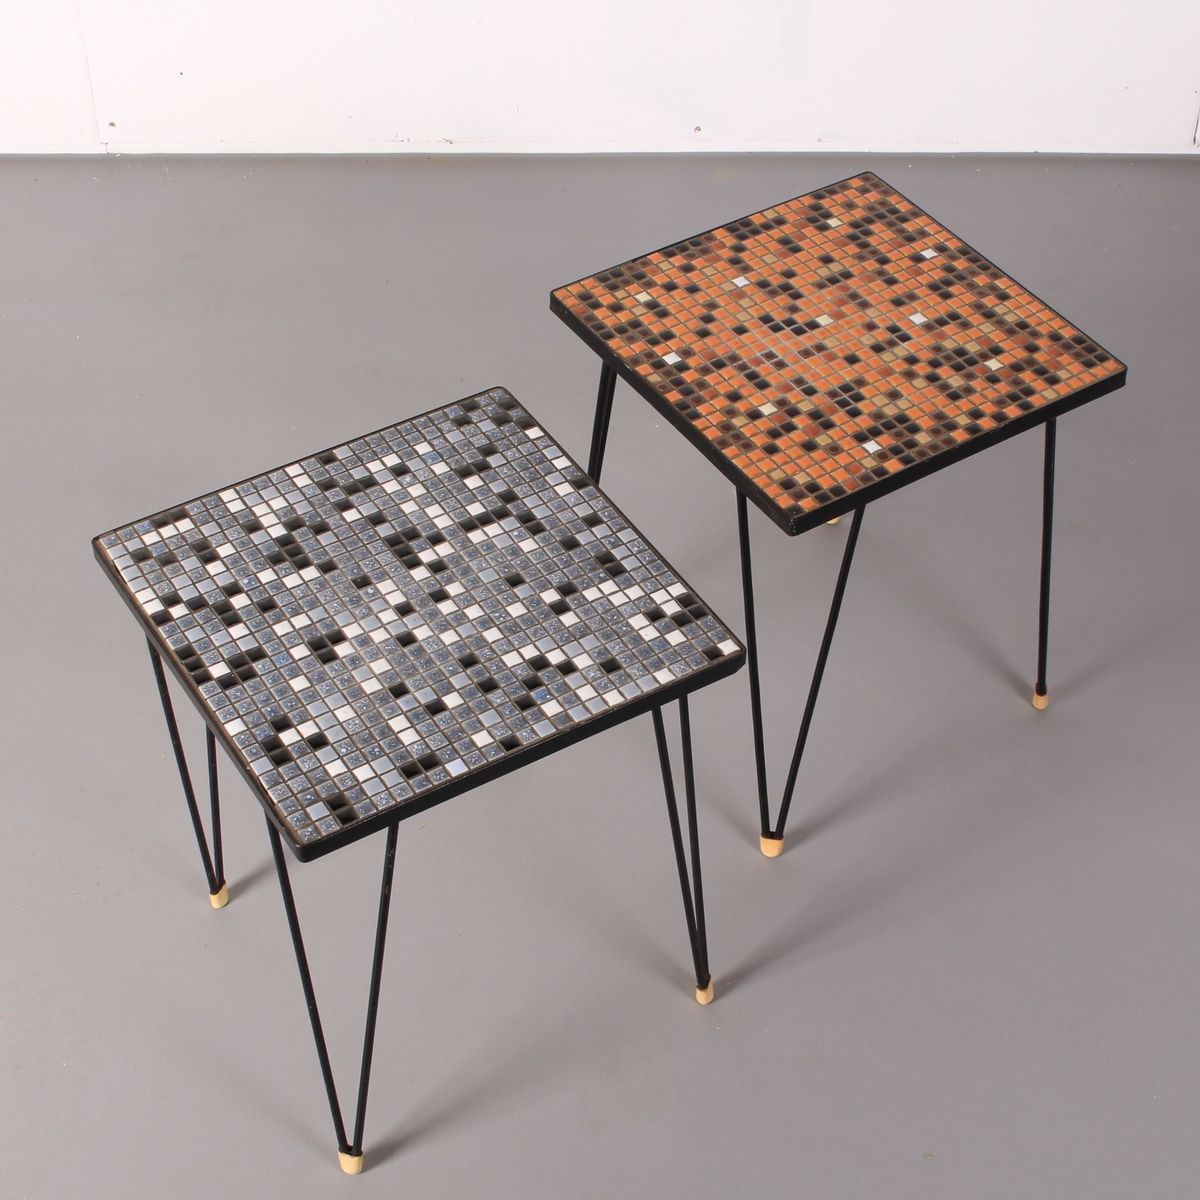 Vintage Mosaic Tiled Side Tables With Hairpin Legs, 1970s